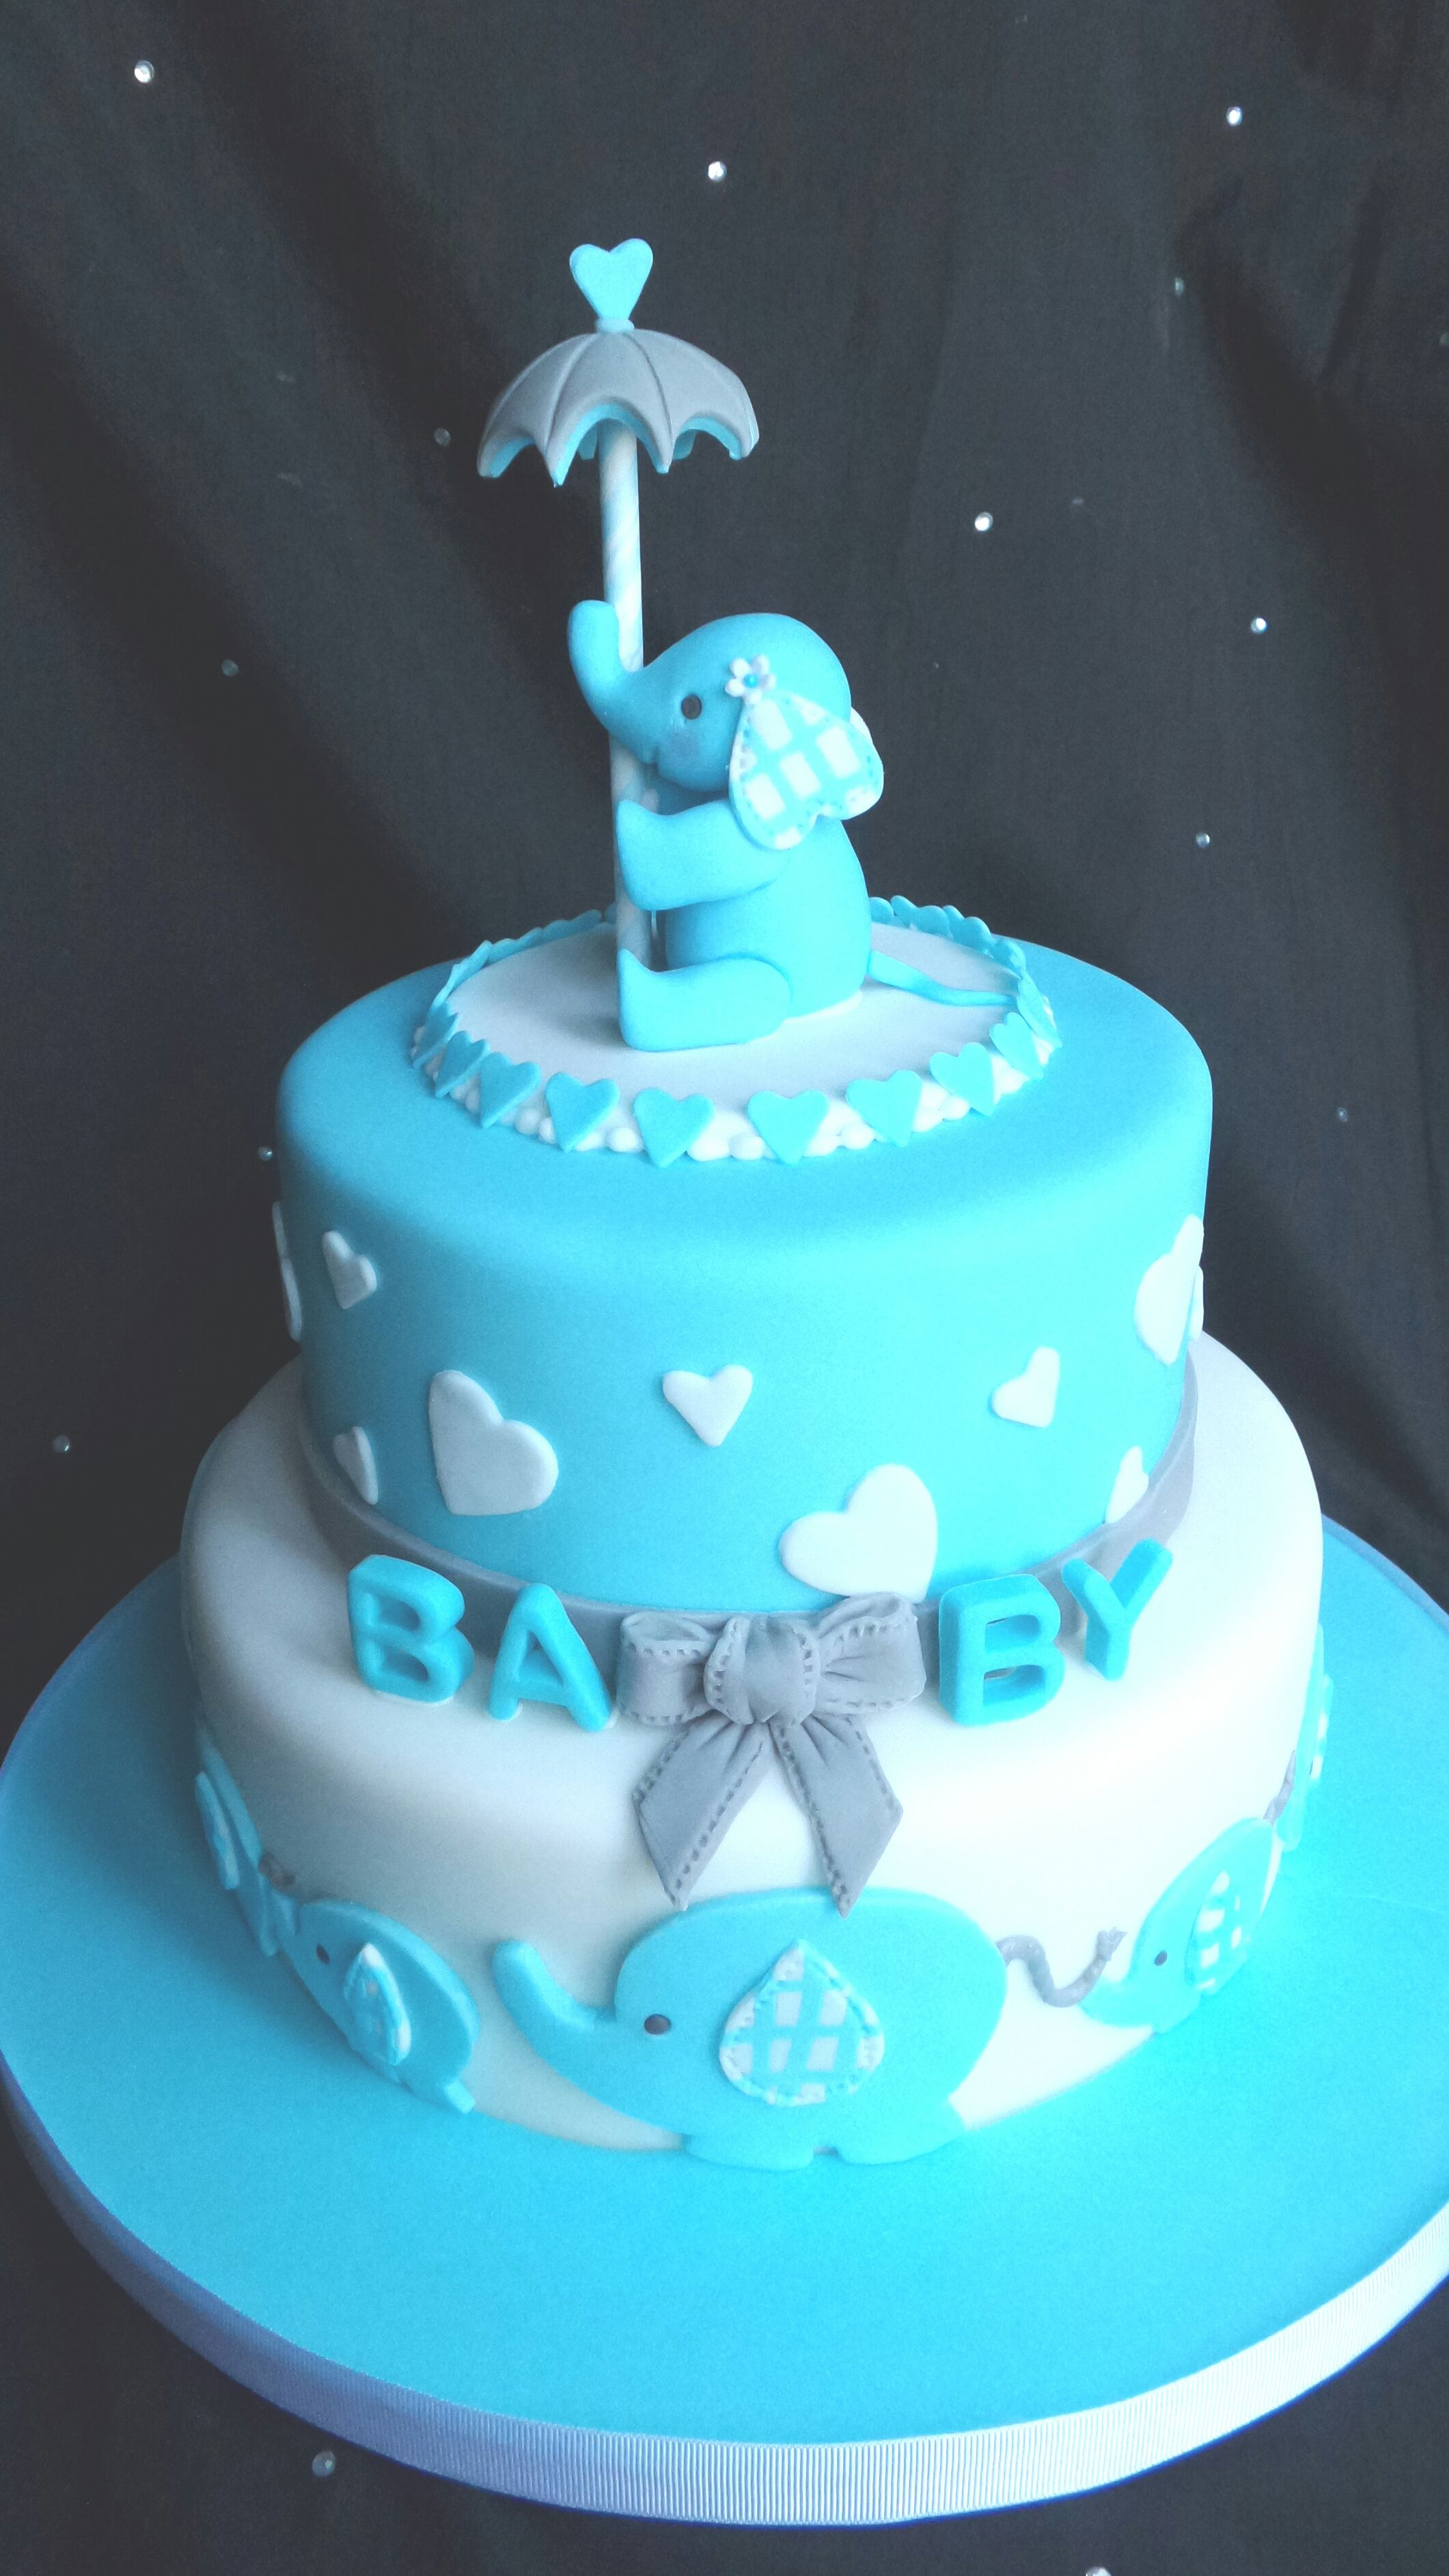 Baby Shower Cake With Hand Crafted Sugar Paste Elephants U0026 Cake Topper